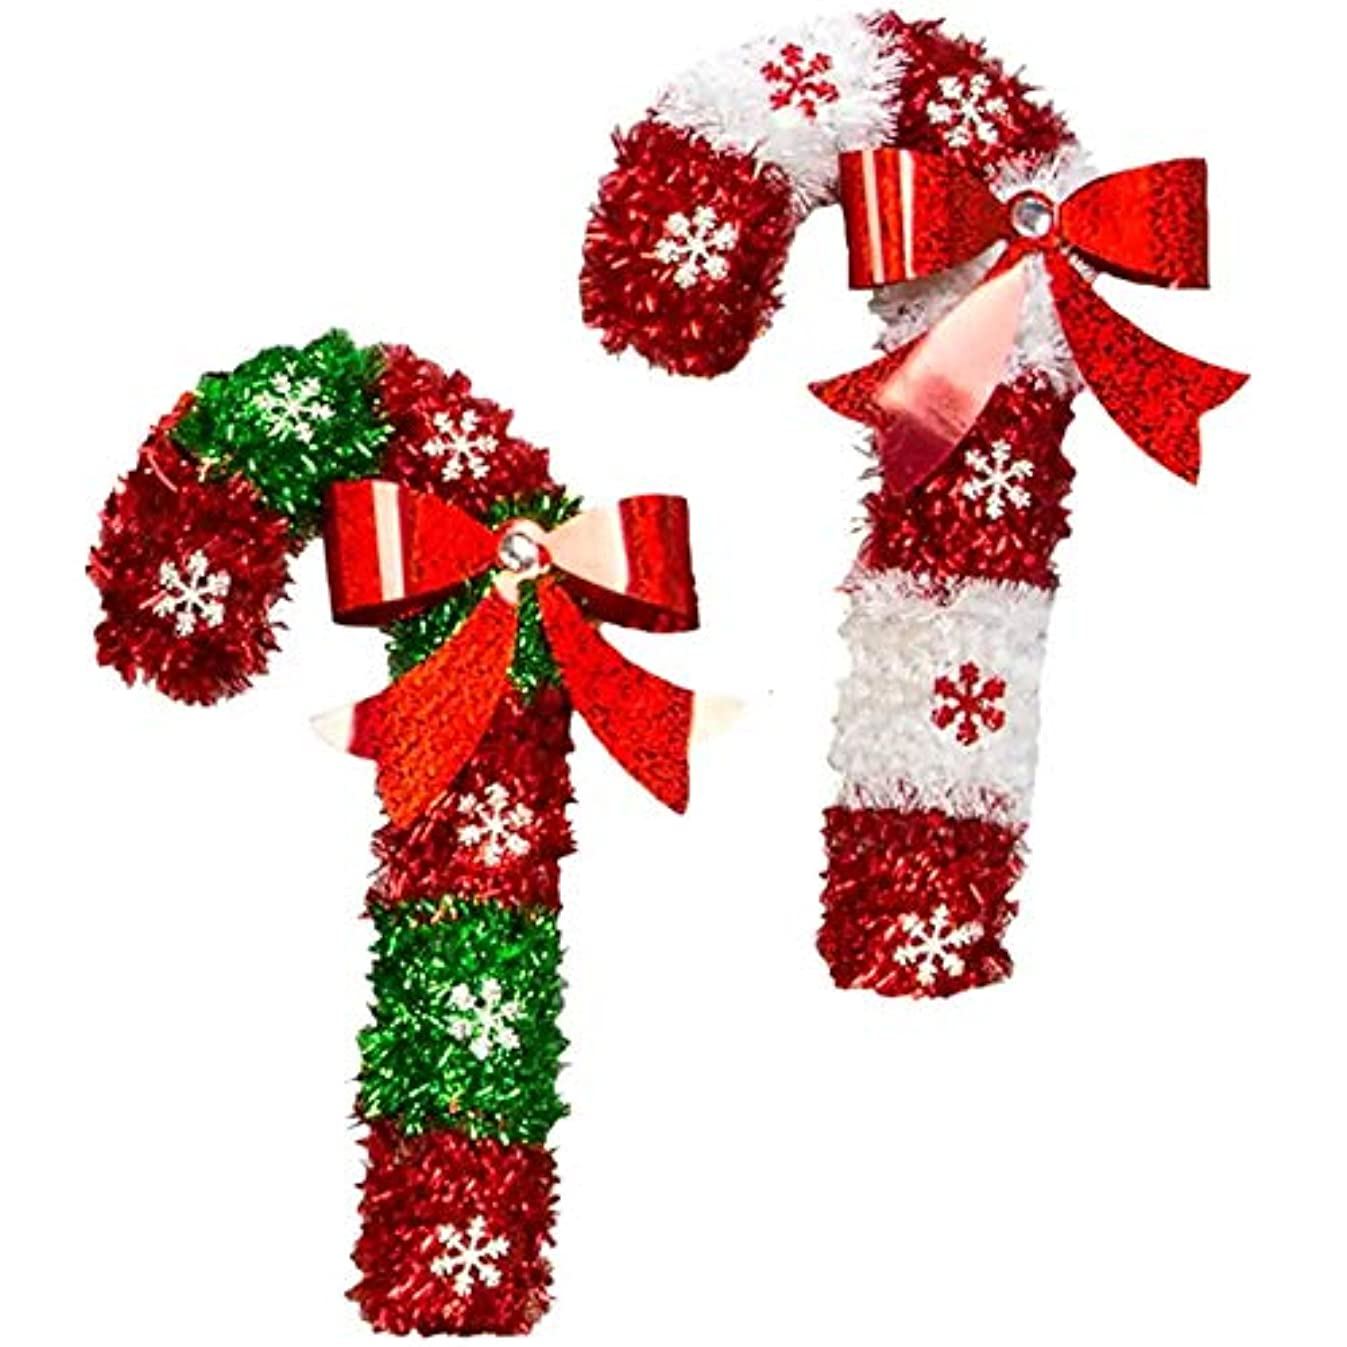 Christmas Decorations Merry Celebrate A Holiday Shiny Tinsel Candy Cane Decore for Home Decor Office Party School Doorway Wedding Church Fireplace Set of 2 Pack Green and Red Wall Stair Hanging Decor